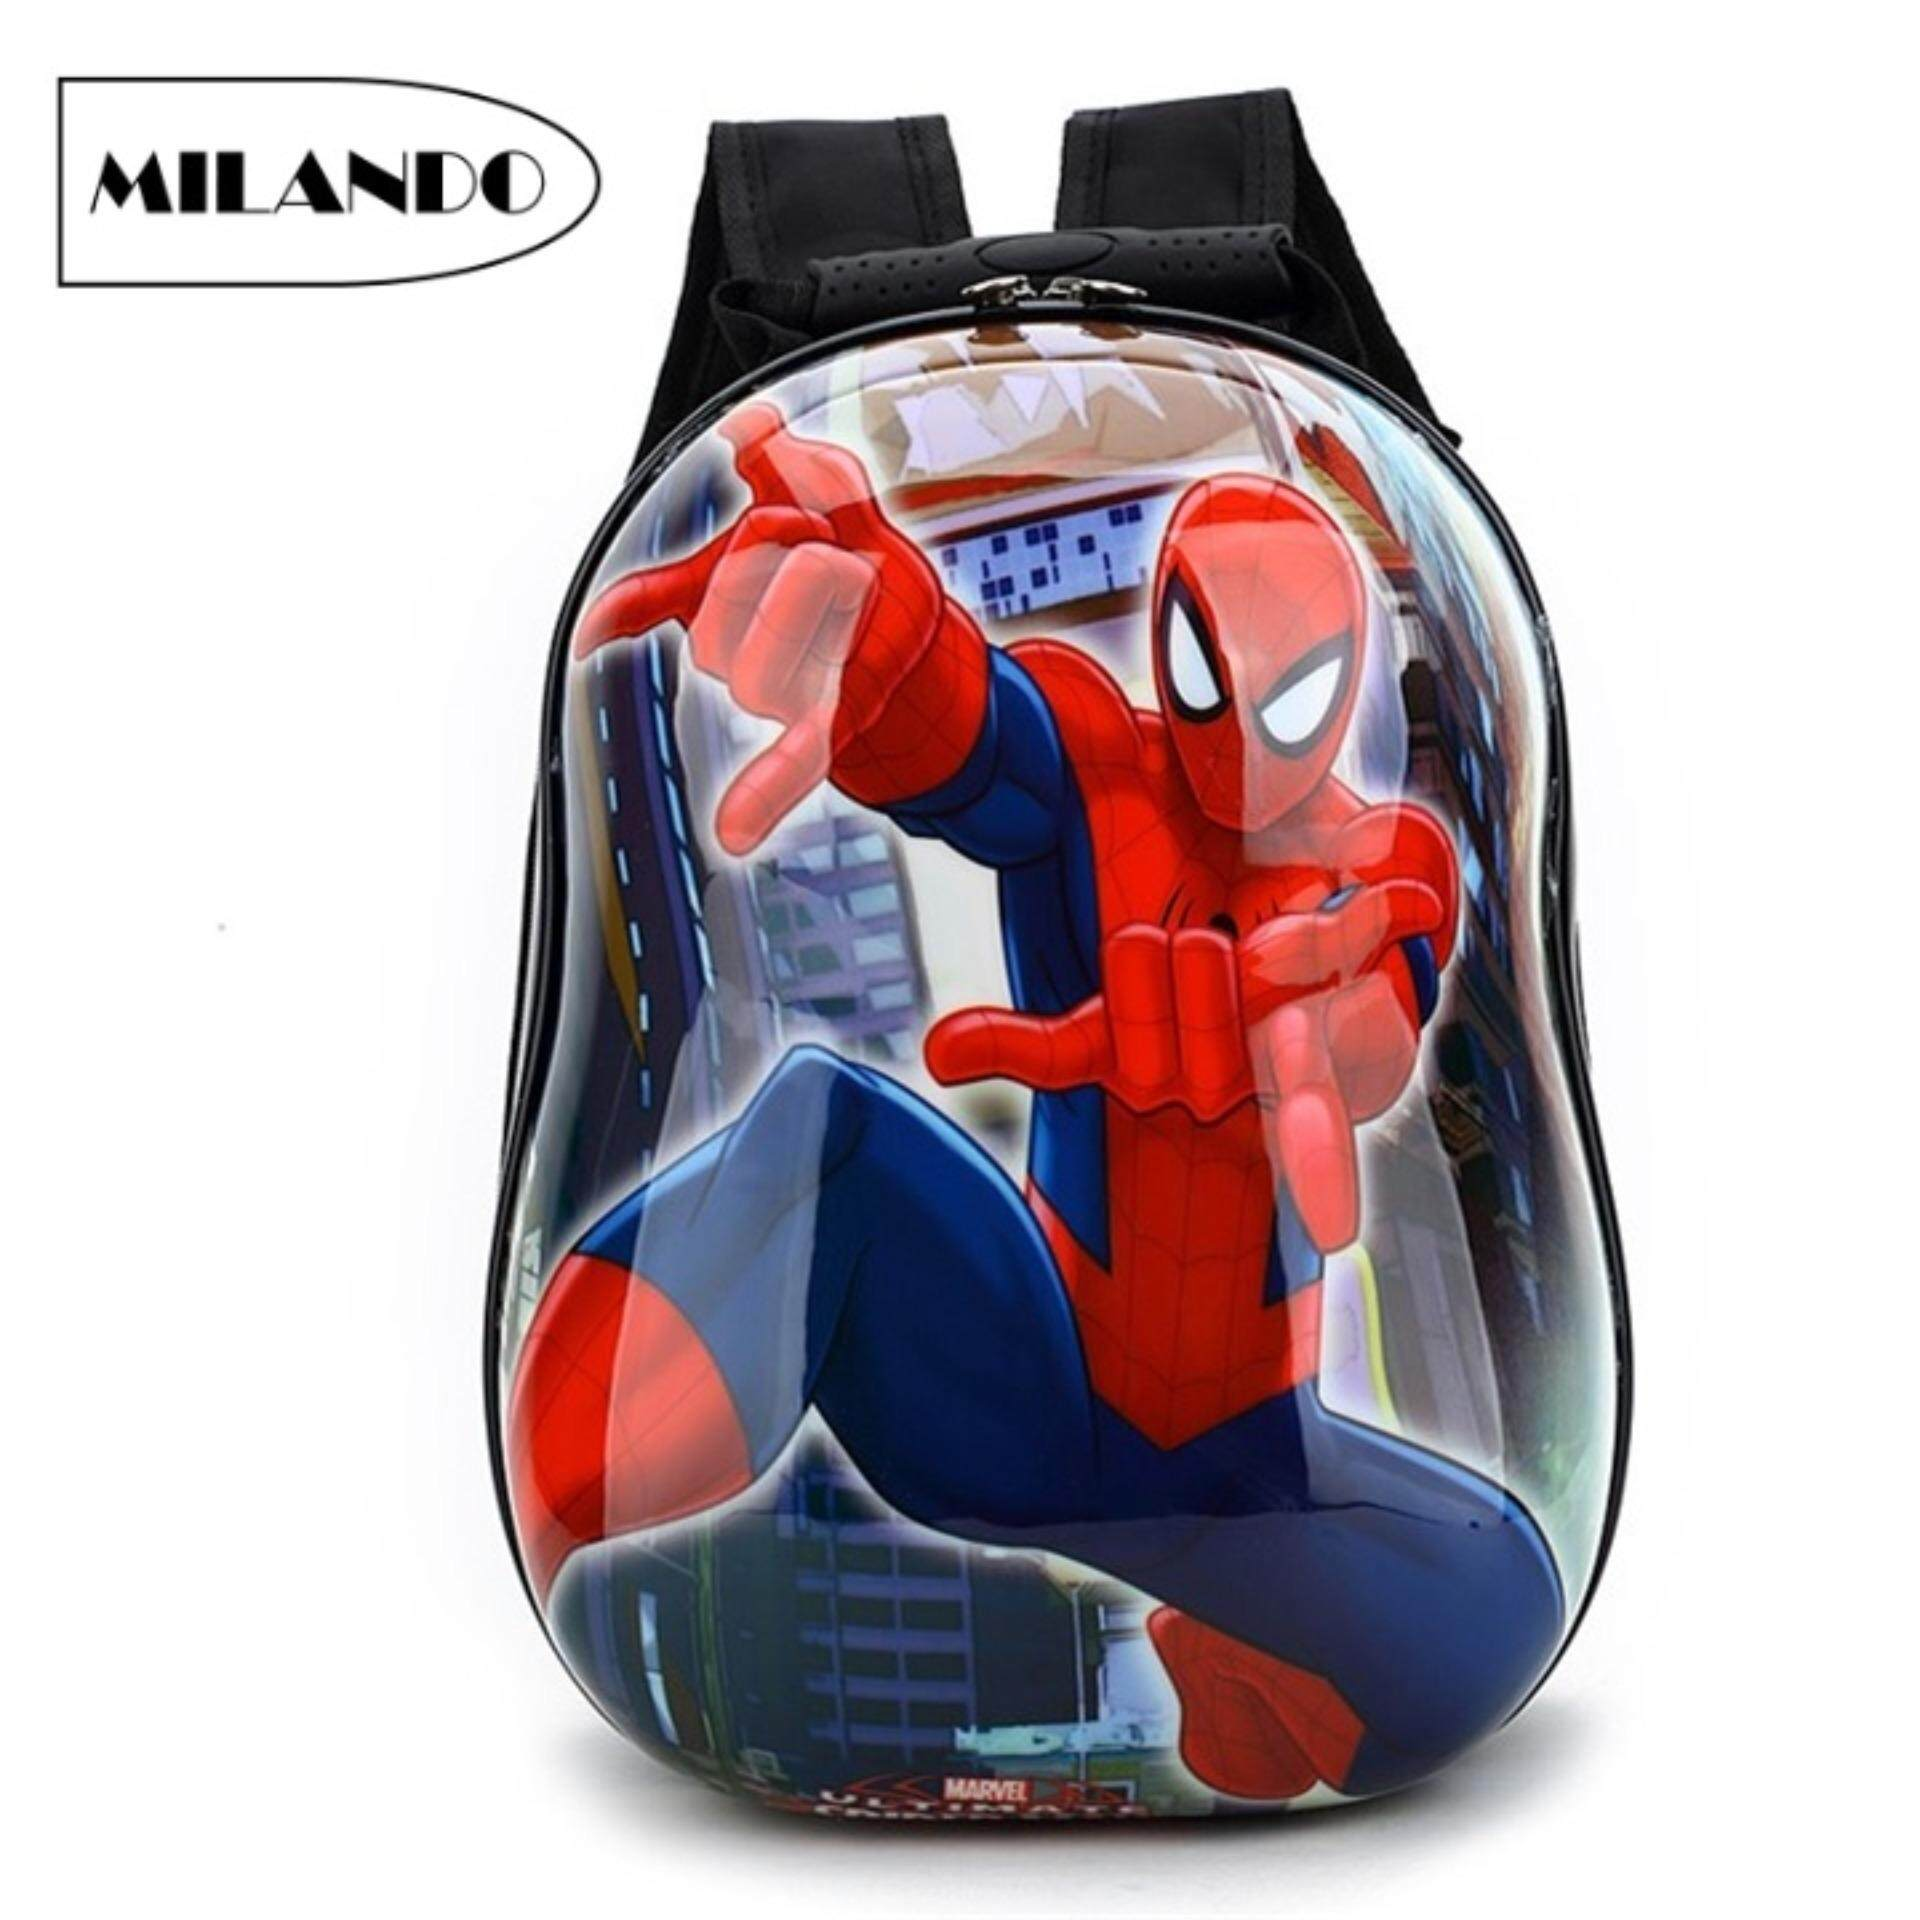 de30ecd8d400 MILANDO Kid 3D Spider Design Hard Case ABS Shell Lightweight 13-inch Backpack  School Bag